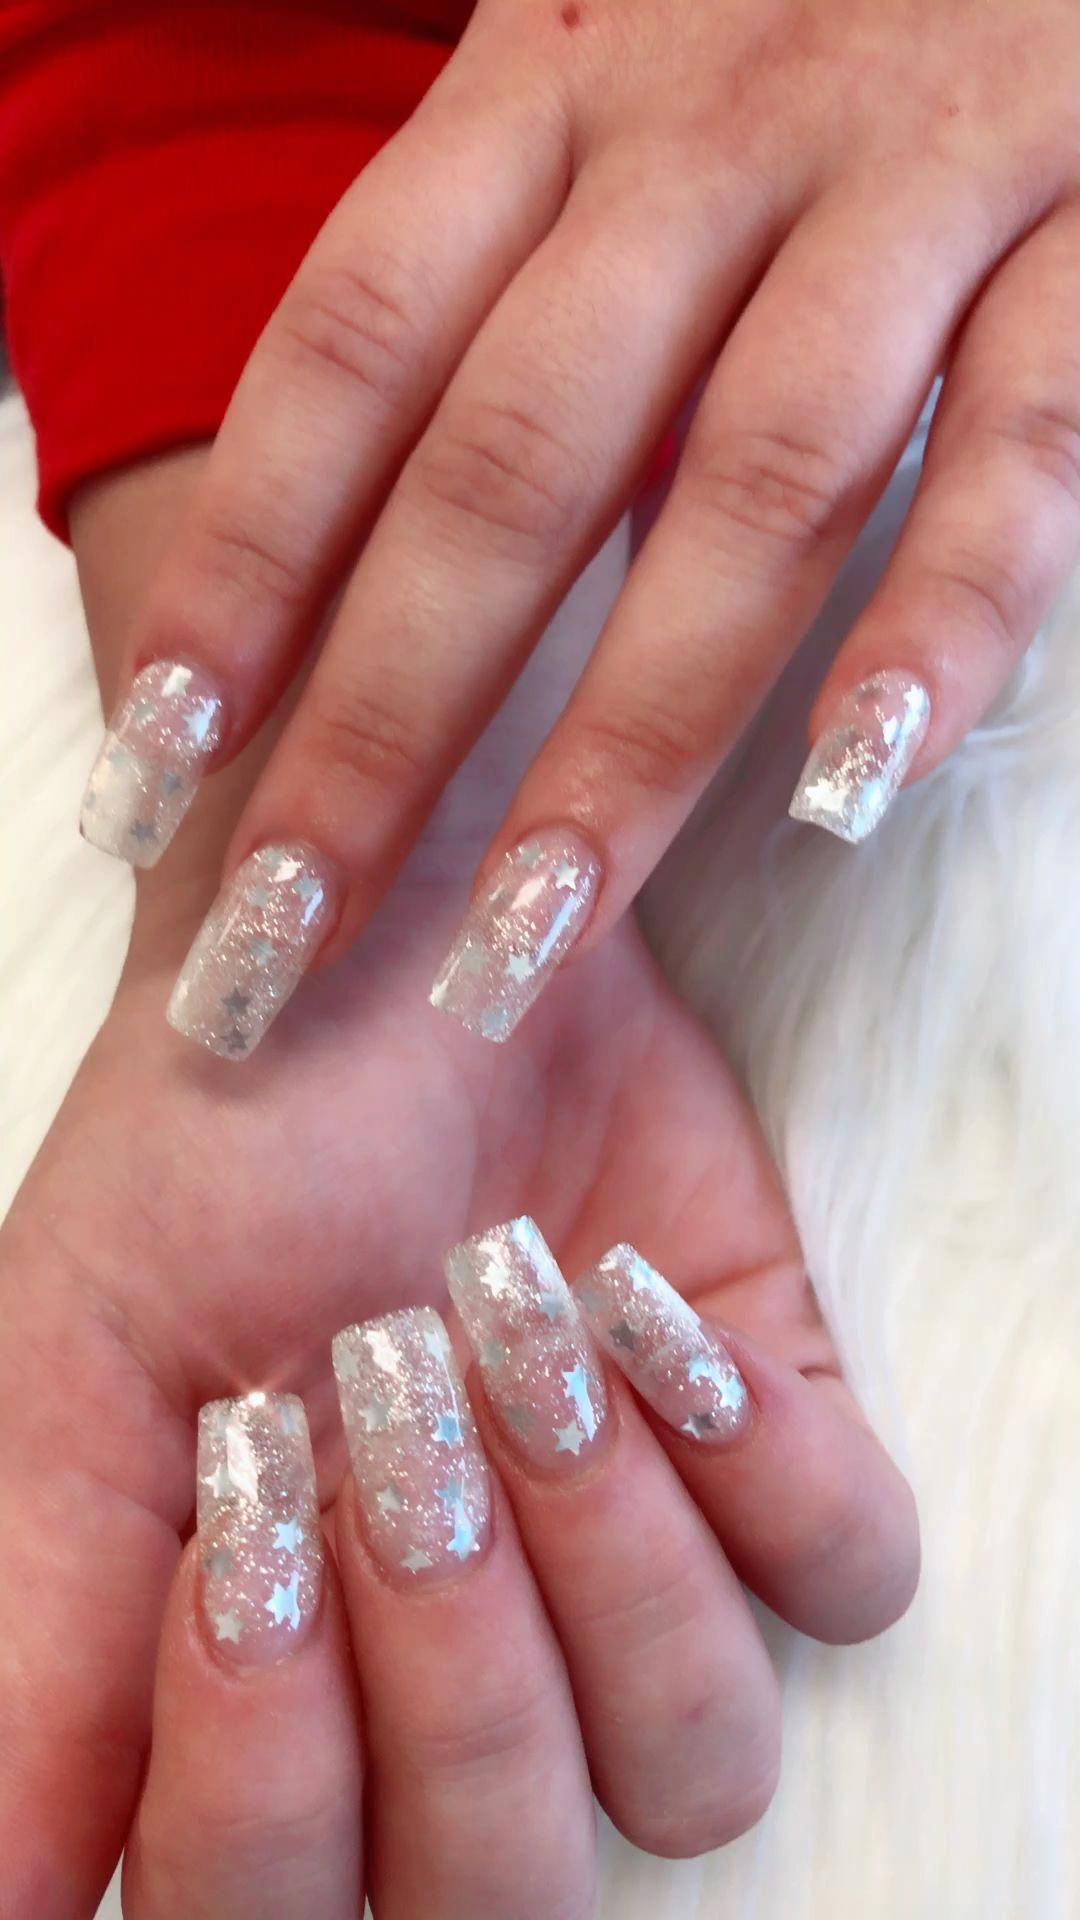 The Perfect Base For Nails Well Done Half Done In 2020 Nail Extensions Acrylic Christmas Nails Acrylic Bling Nails